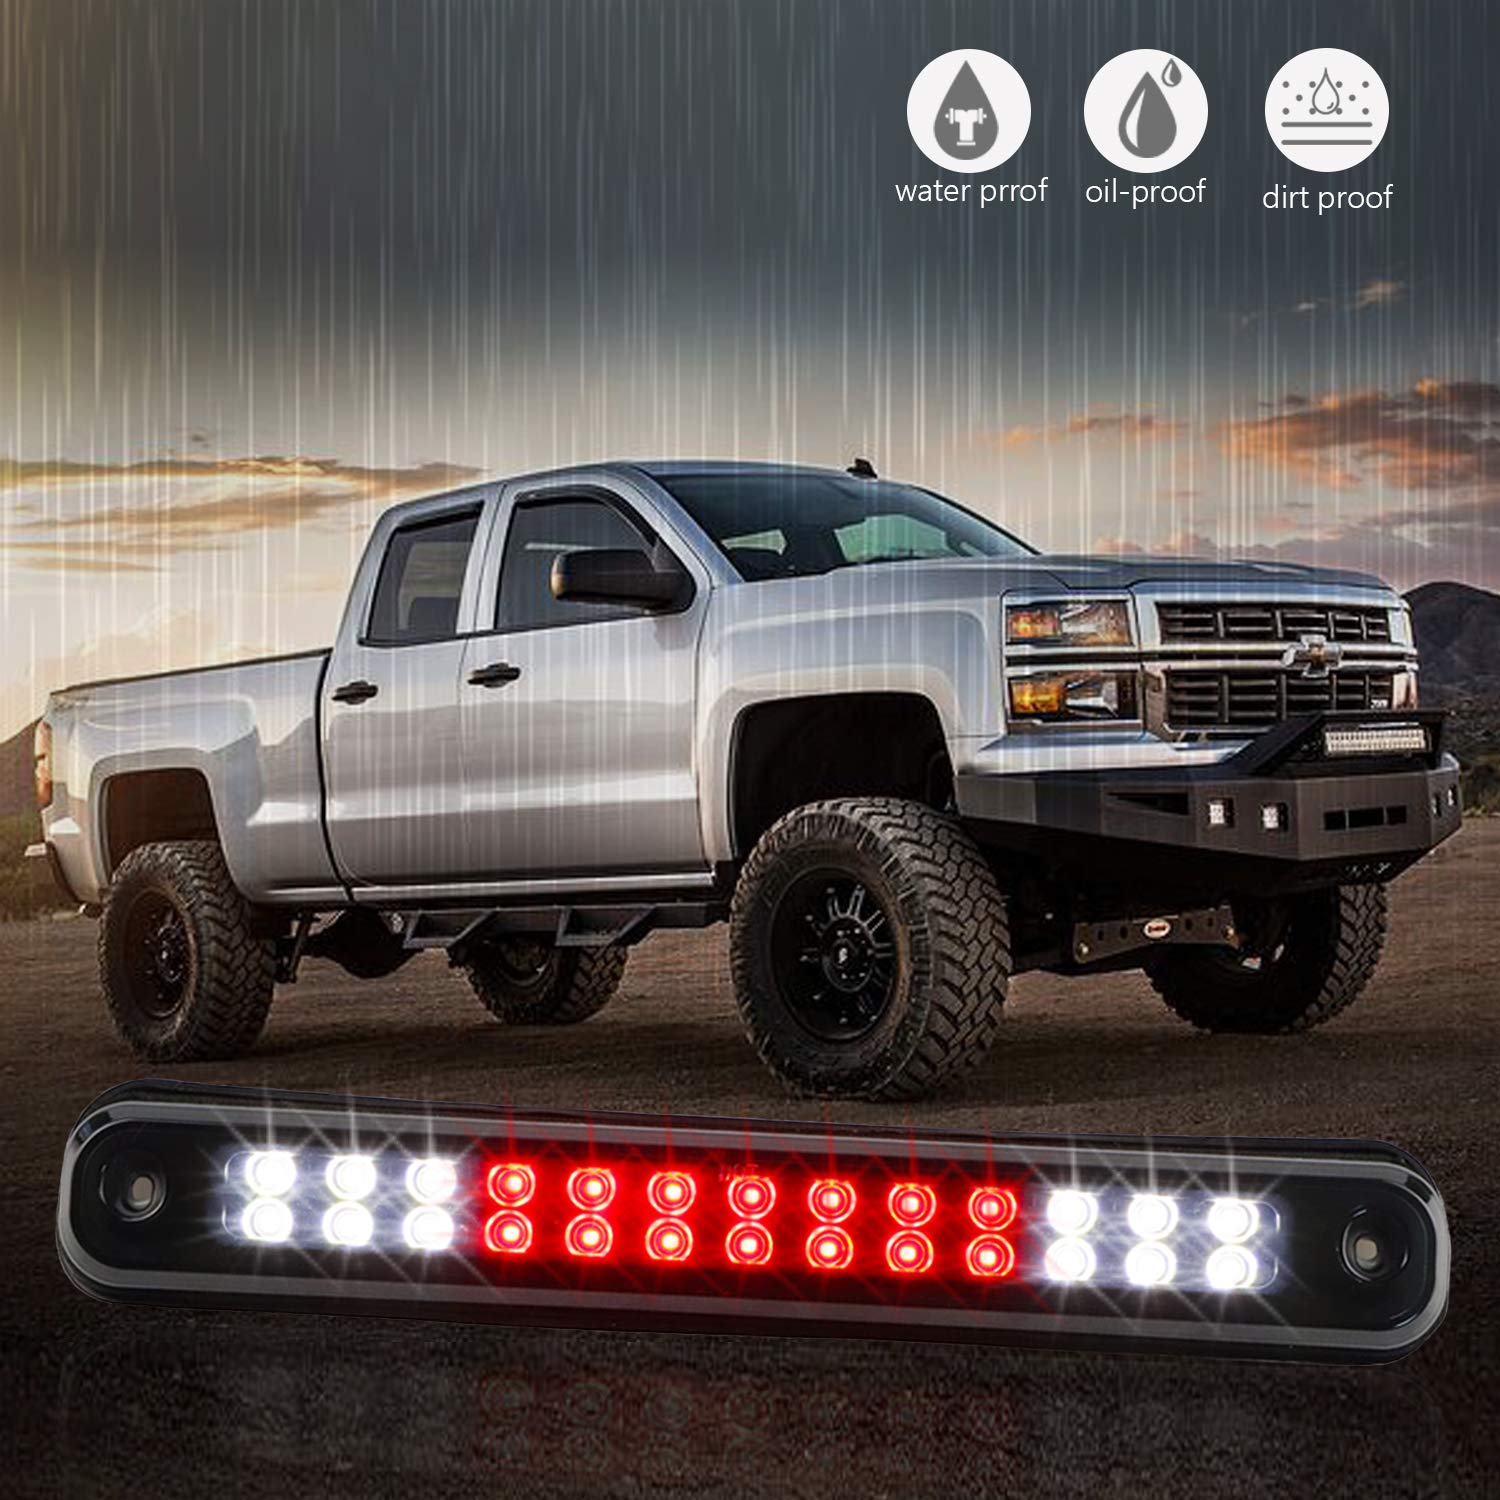 Black Housing Smoke Lens Sanzitop LED 3rd Brake Light Rear Tail Brake Light Cargo Lamp Replacement Fit for 1988-1998 Chevy GMC C//K C10 1500-3500 Silverado Sierra 16521970 16522433